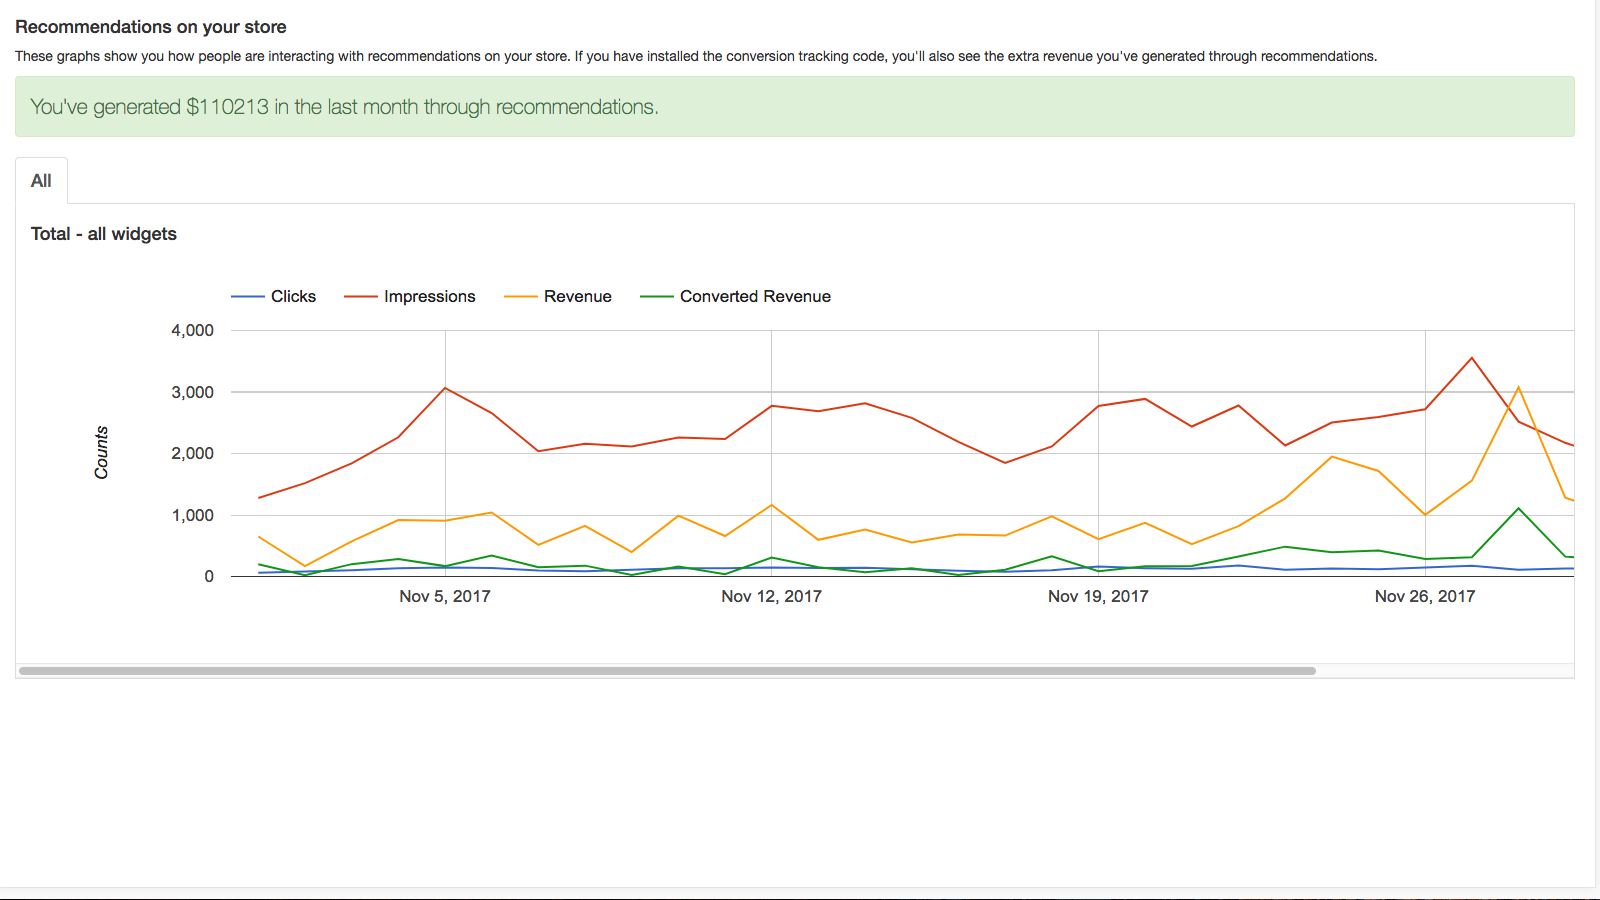 Reporting shows revenue from clicks on recommendations